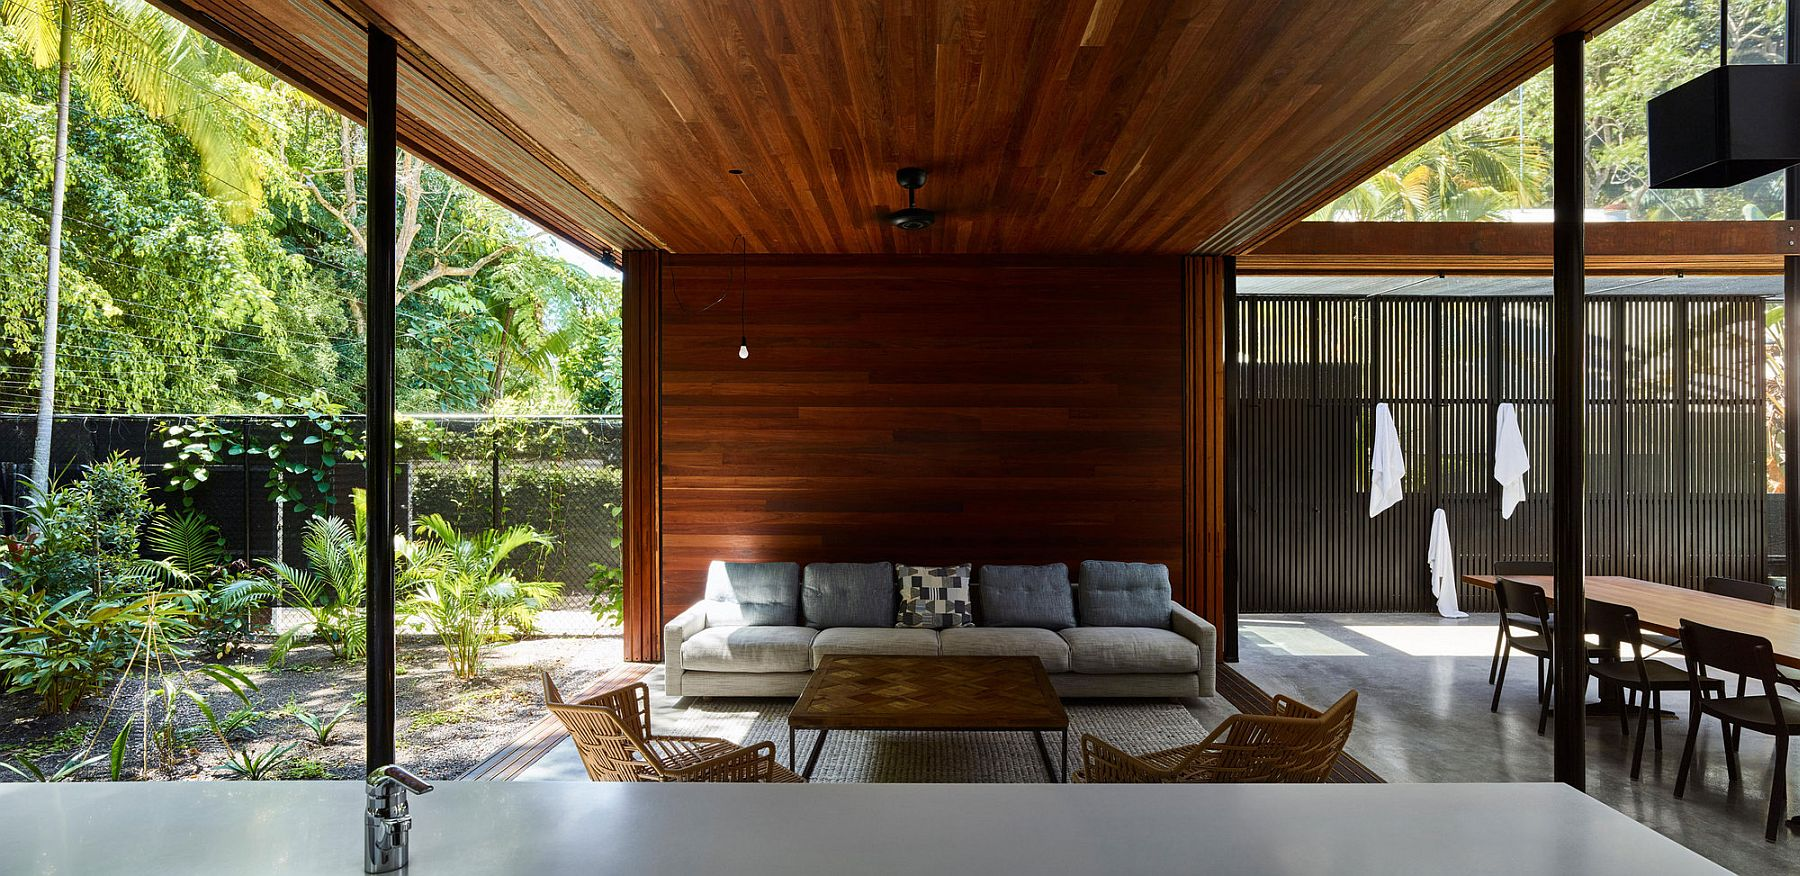 Wooden patio inside the verandah style home set in a Rainforest